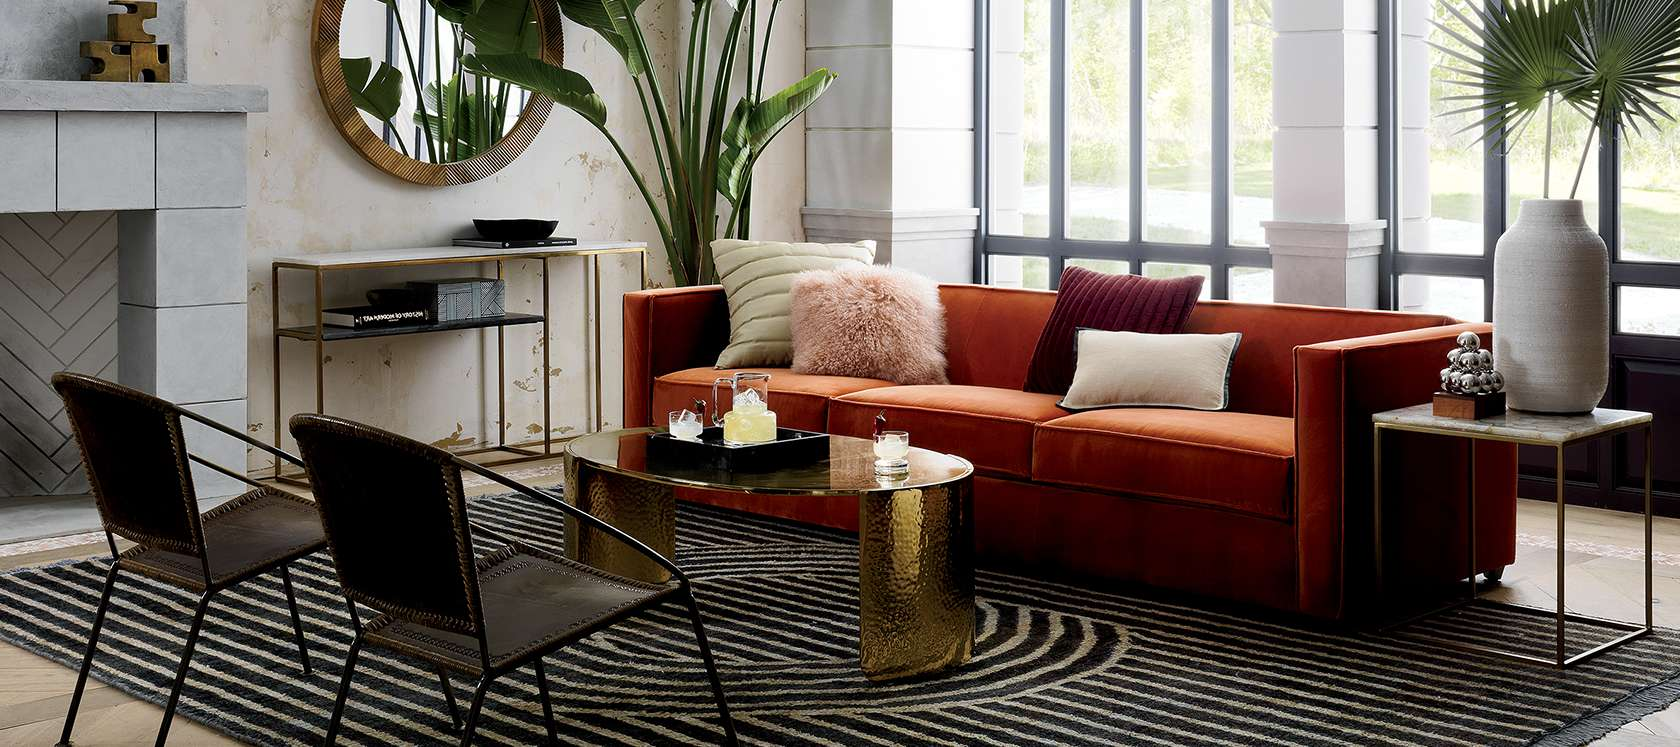 New Furniture - New Home Décor and Accessories | CB2